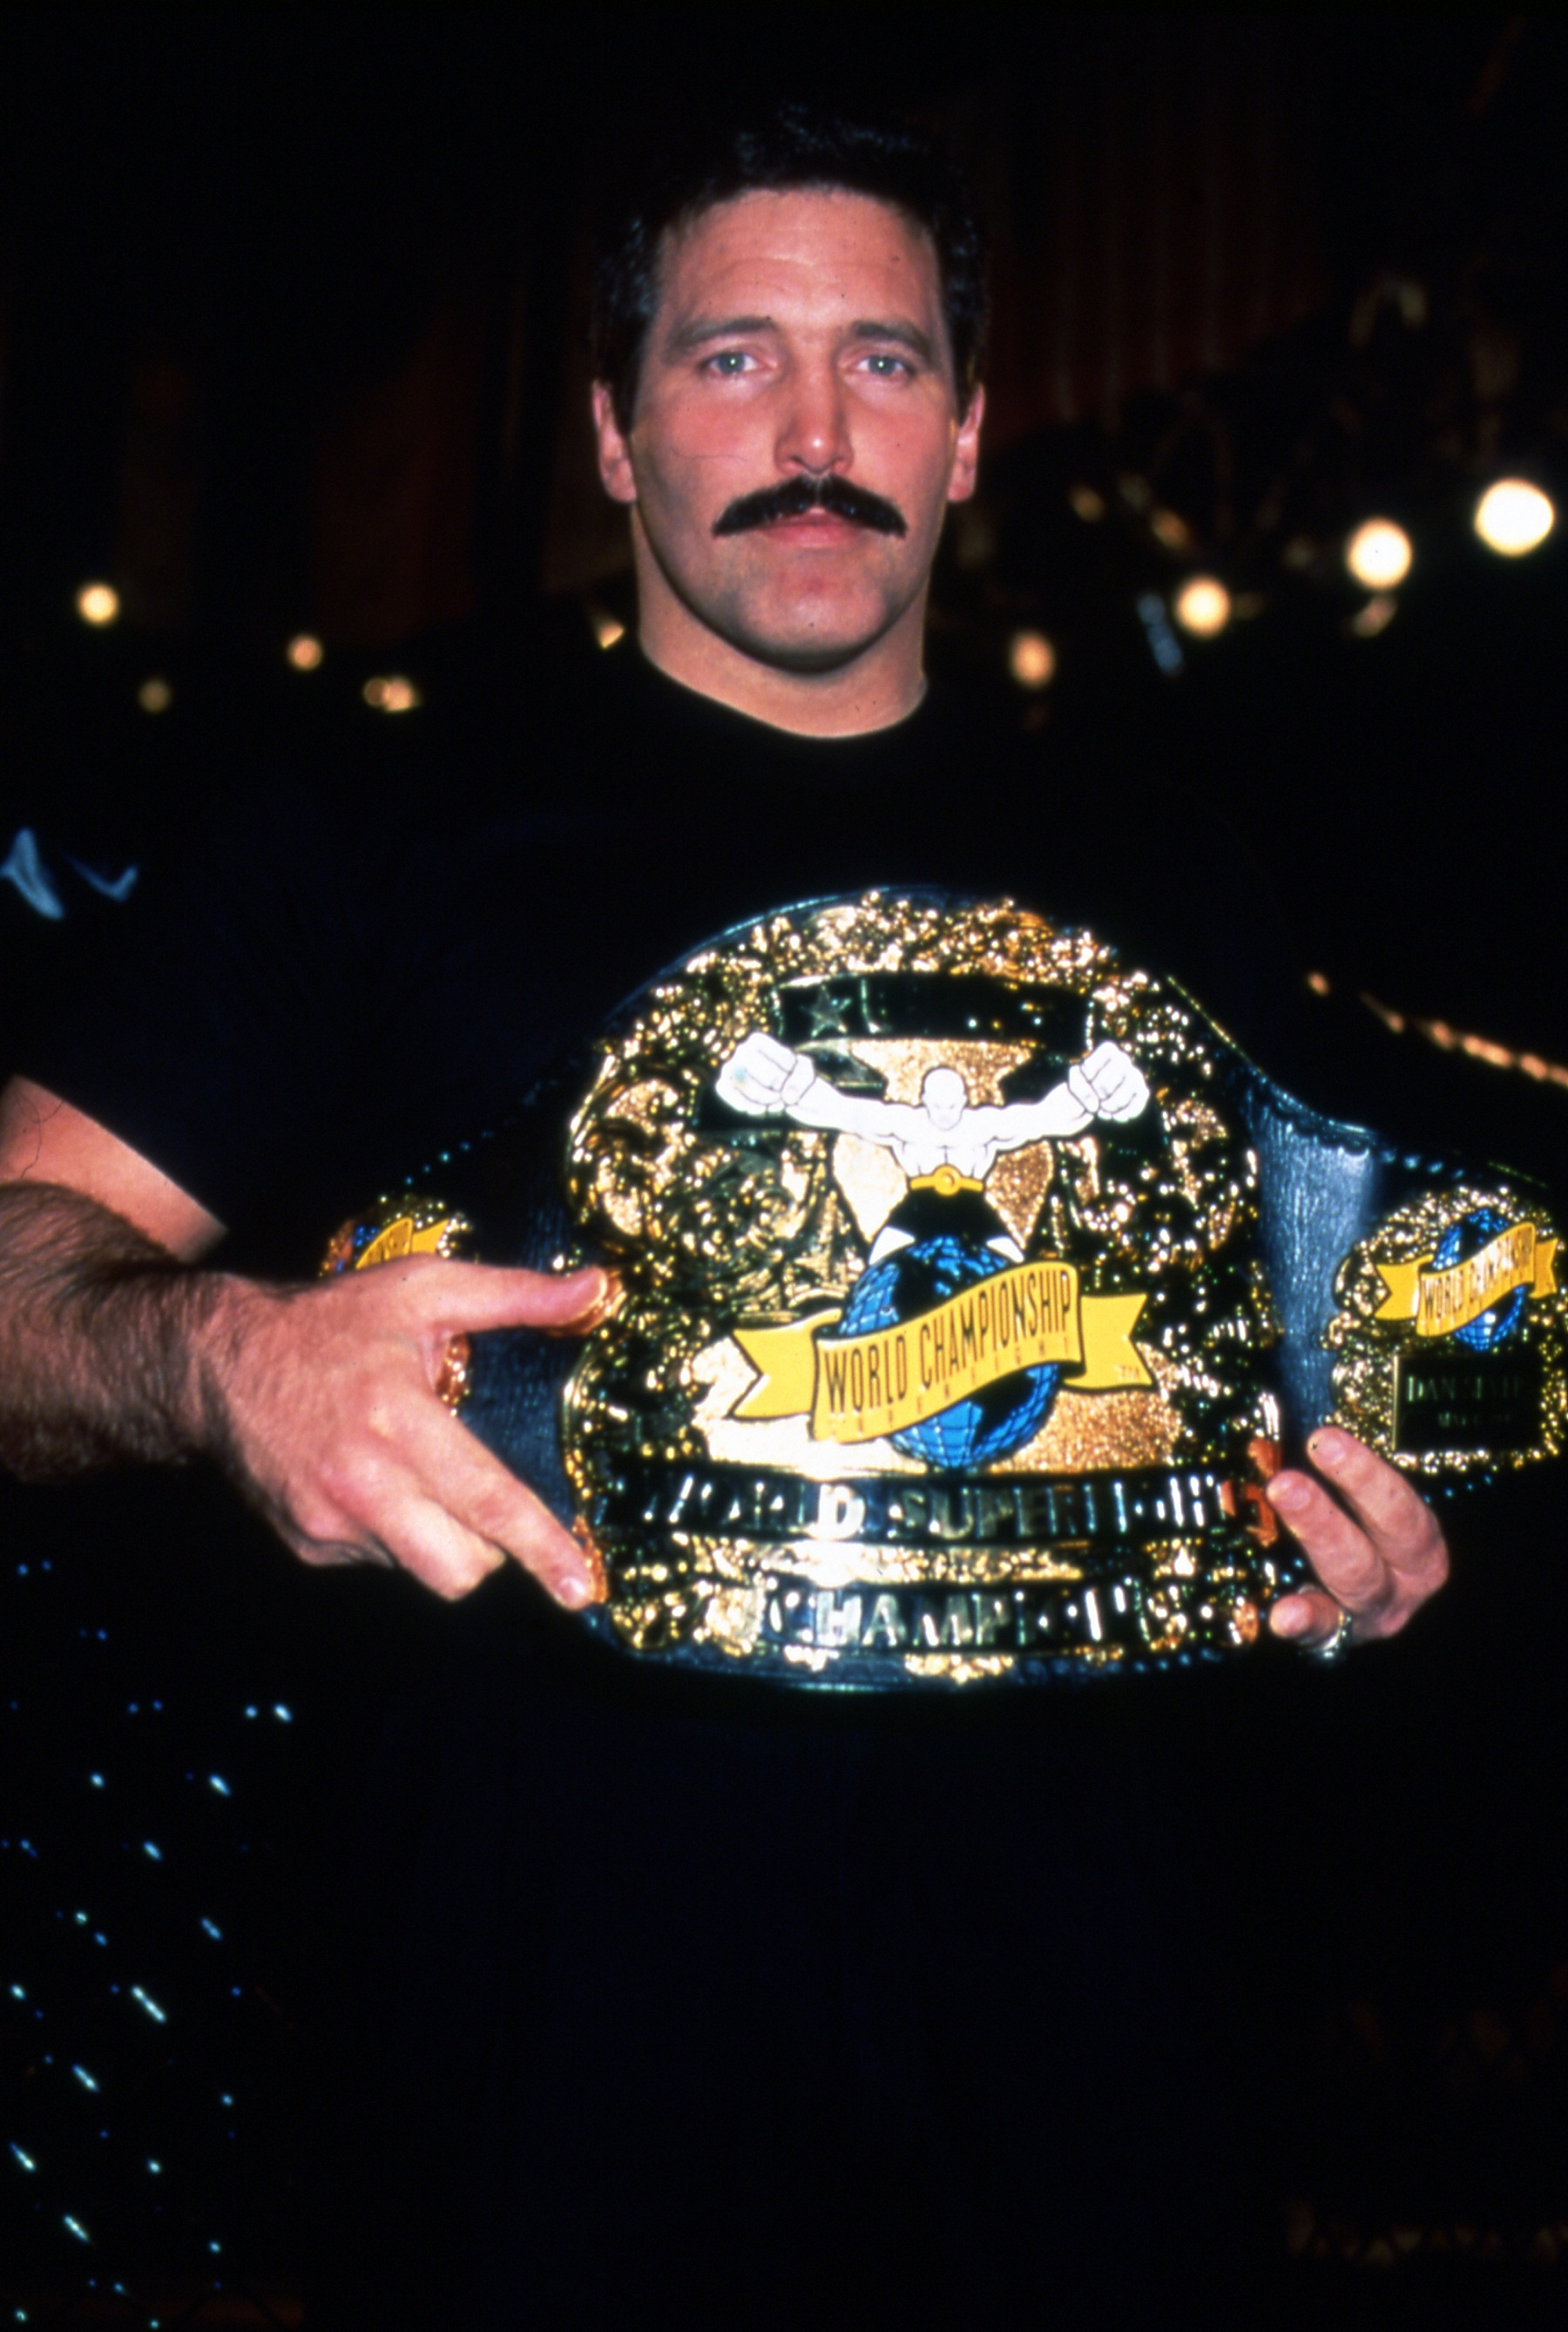 <a href='../event/UFC-Silva-vs-Irvin'>UFC </a>Hall of Famer <a href='../fighter/Dan-Severn'>Dan Severn</a>